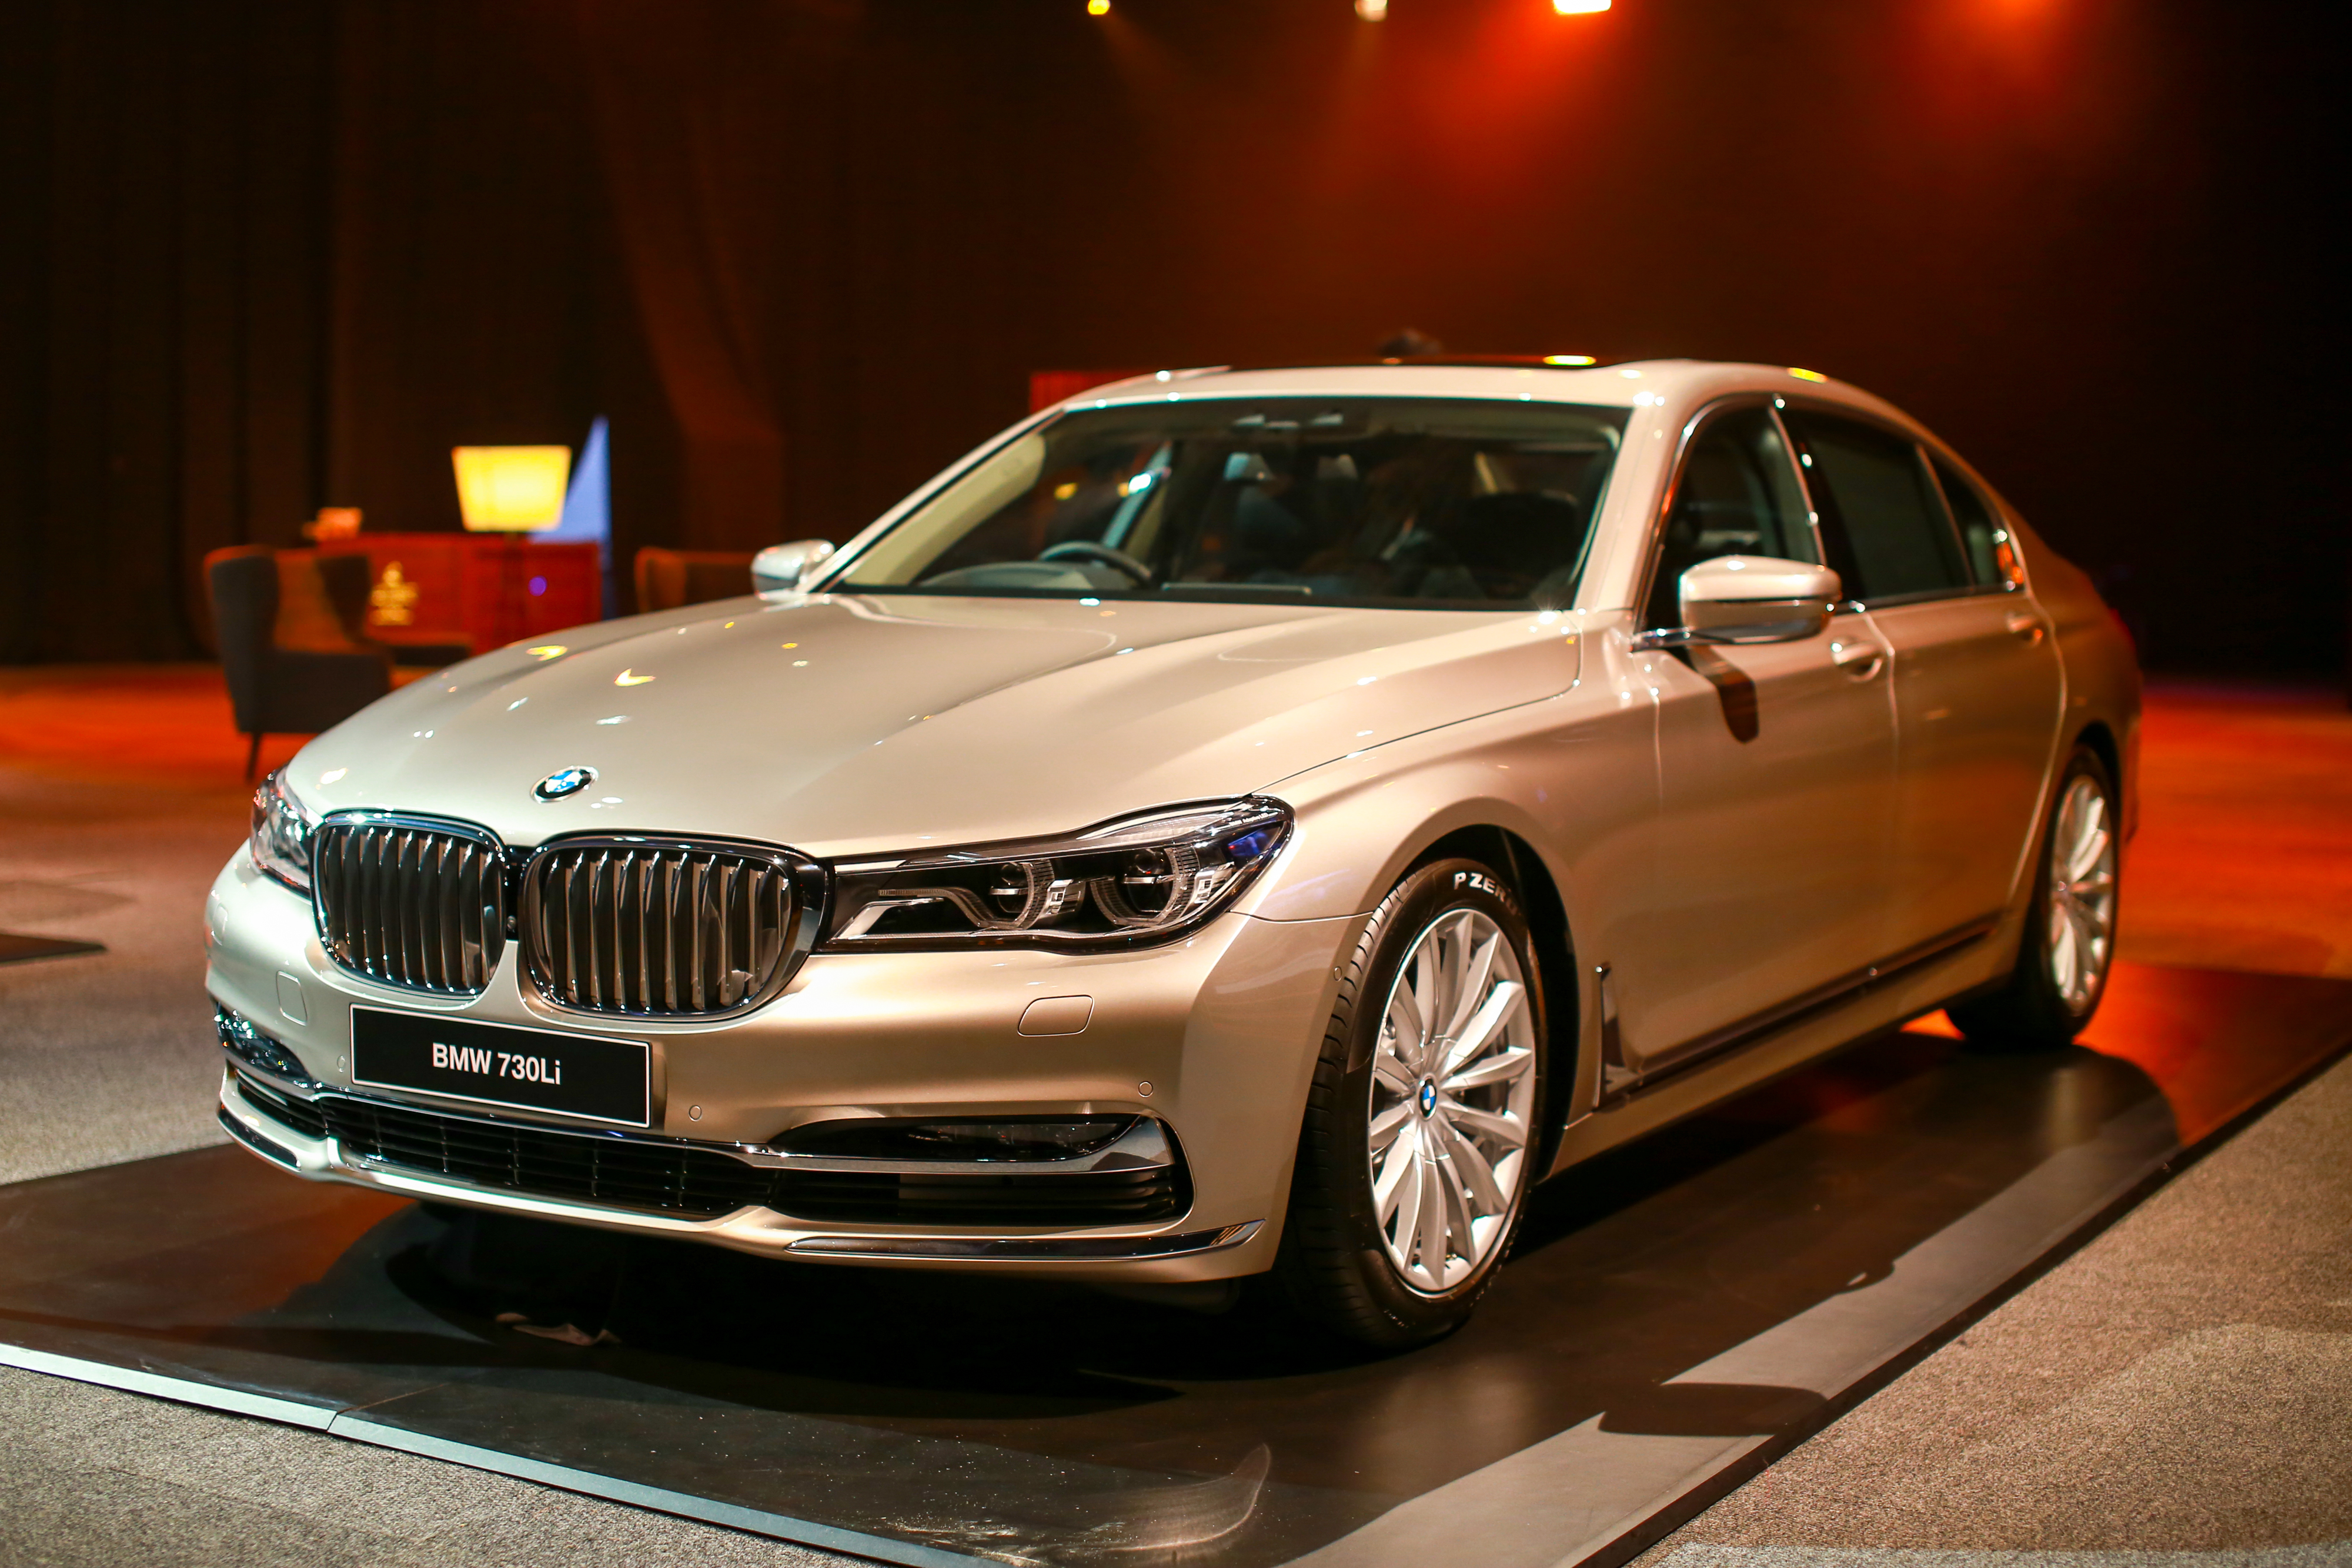 New Bmw 7 Series >> New G11 BMW 7 Series launched in Malaysia – 2.0 turbo 4cyl 730Li and 740Li, from RM599k Image 436365